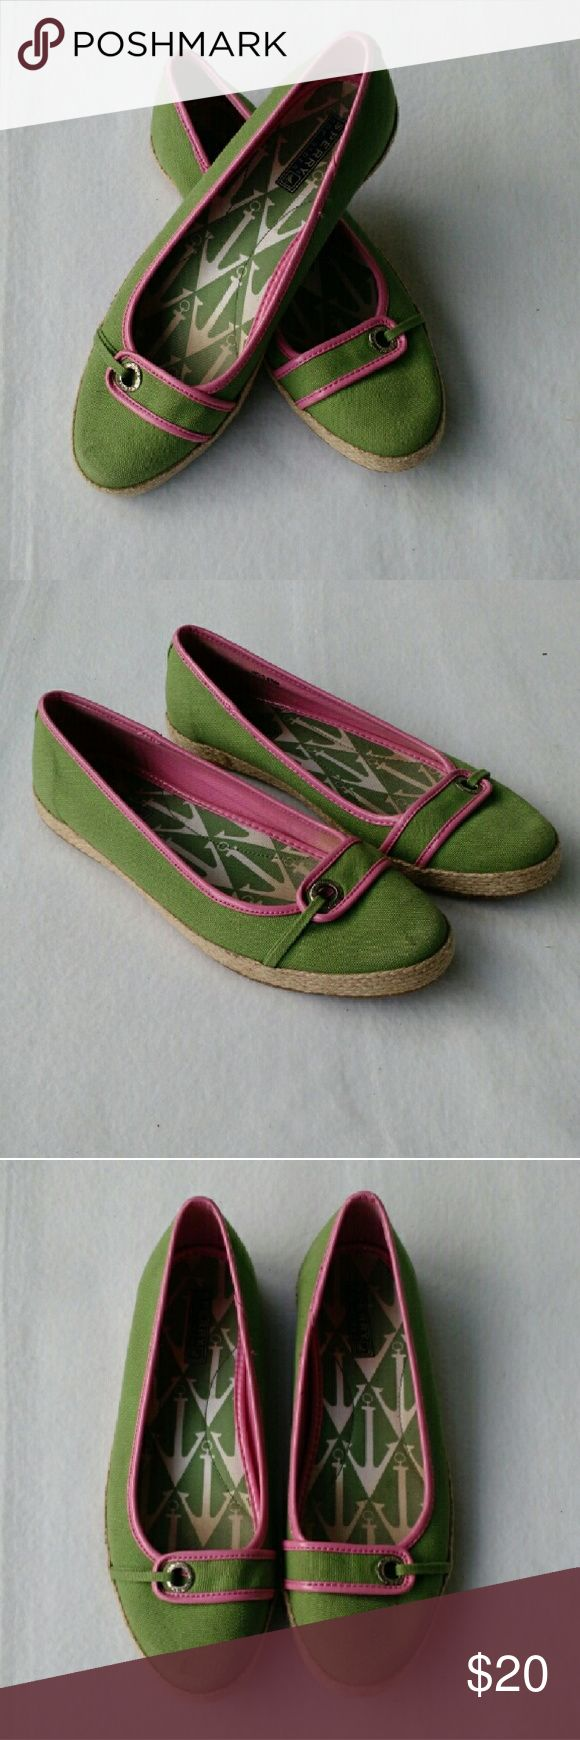 Sperry Top-Sider Pink & Green Espadrille Flats Pre-owned, but in great condition. Minimal overall wear. One small mark on the right toe that more than likely can be washed off.   Offers are always welcome!  E&T Sperry Top-Sider Shoes Espadrilles